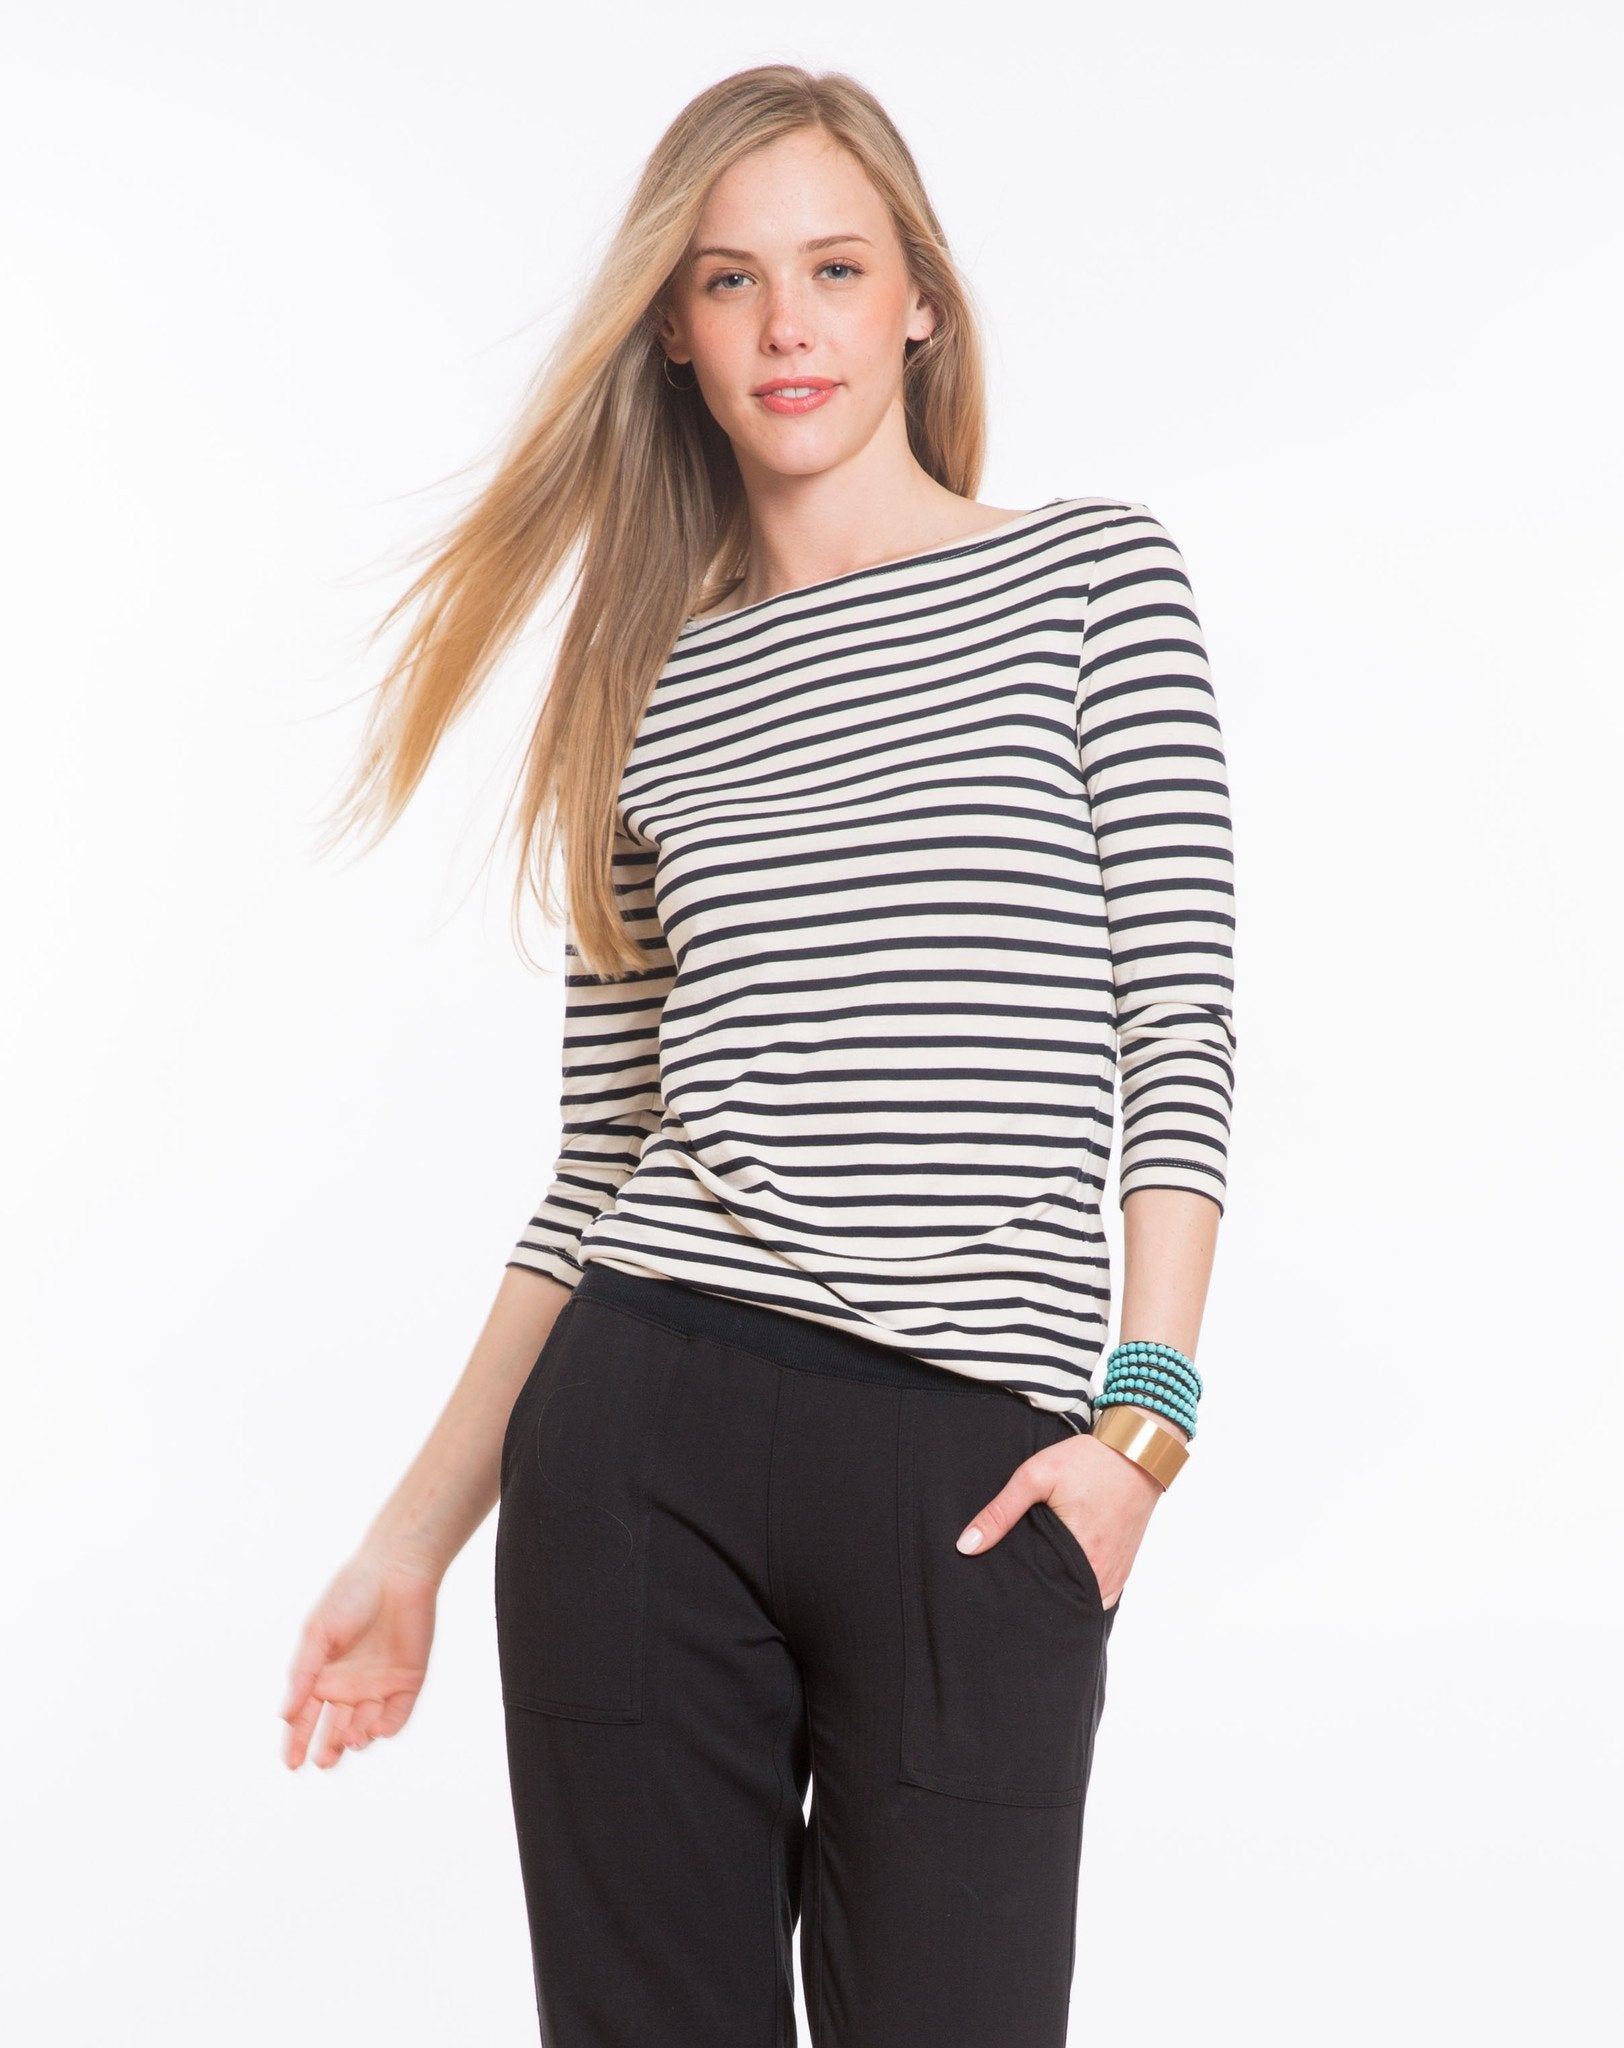 Darby Striped Boatneck Crew - Navy and White Stripe